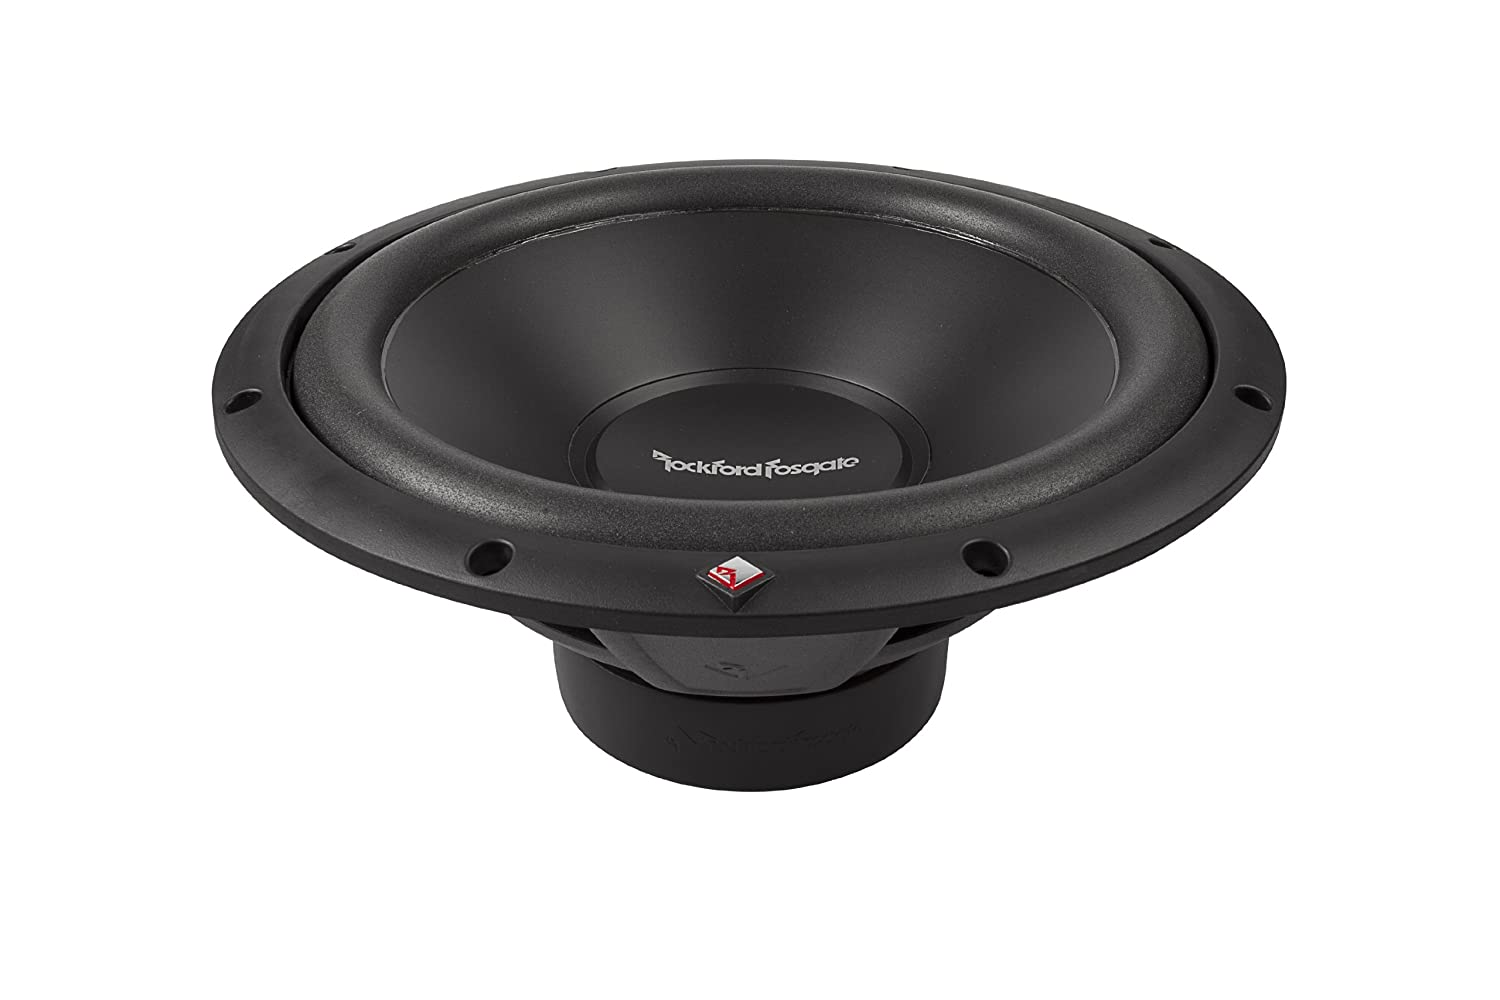 Rockford Fosgate R2d2 10 Prime R2 Dvc 2 Ohm Inch 250 12quot 1500w Active Car Sub Bass Box Subwoofer Wiring Kit And Watts Rms 500 Peak Electronics